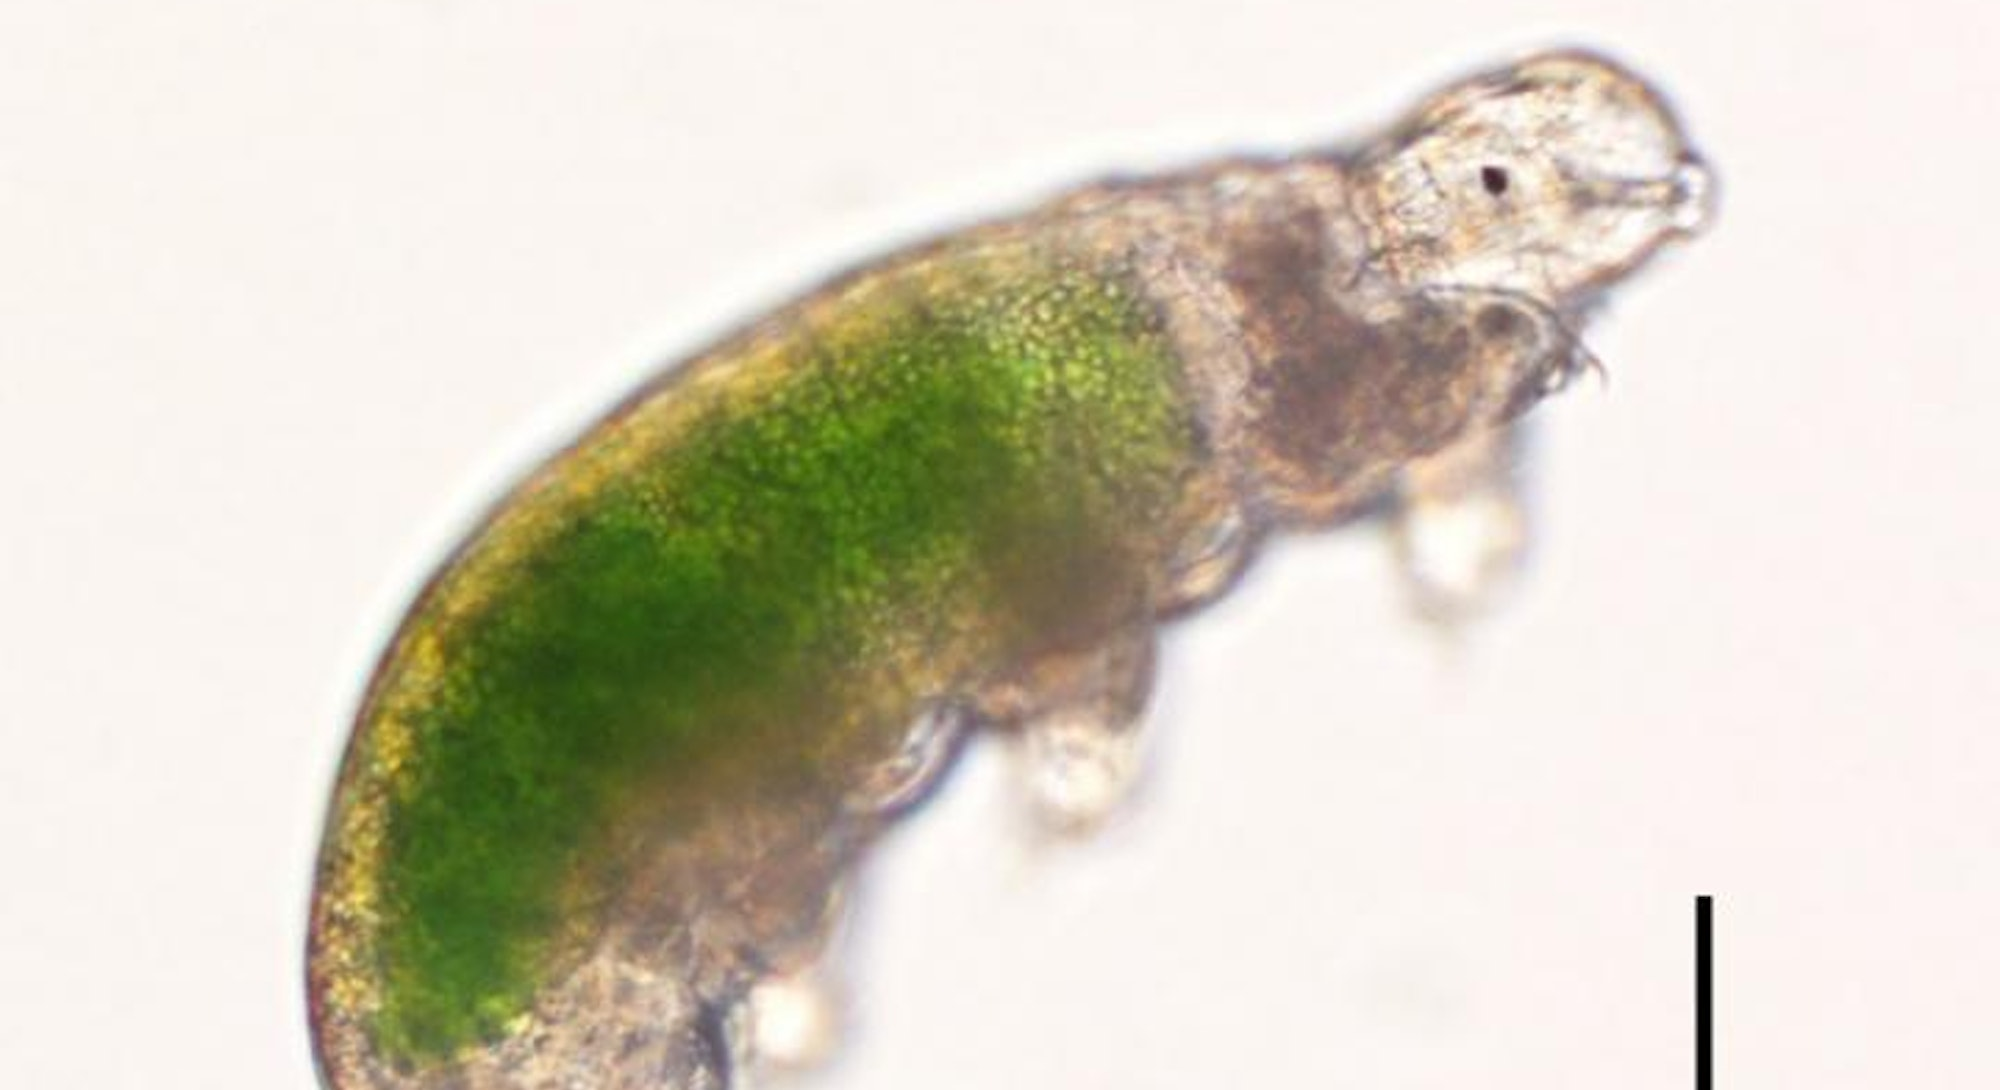 This is Acutuncus antarcticus, an individual of the strain of one of the Antarctic tardigrades revived, SB-3, showing chlorella inside its stomach. Scale bar, 0.1 mm.